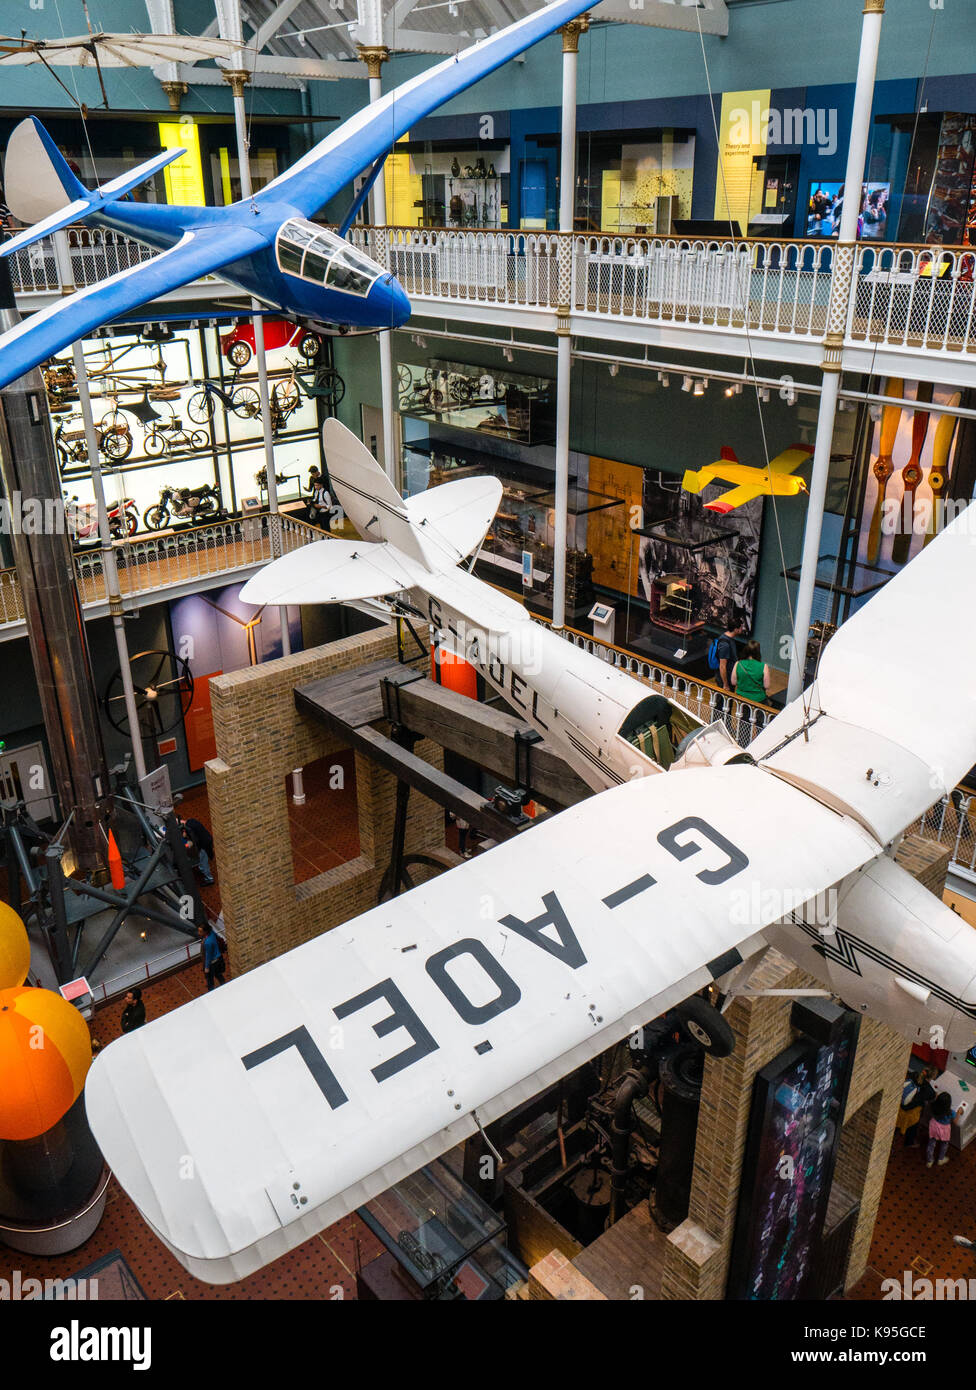 Science Hall view from above with Aeroplanes, The National Museum of Scotland, Edinburgh, Scotland - Stock Image